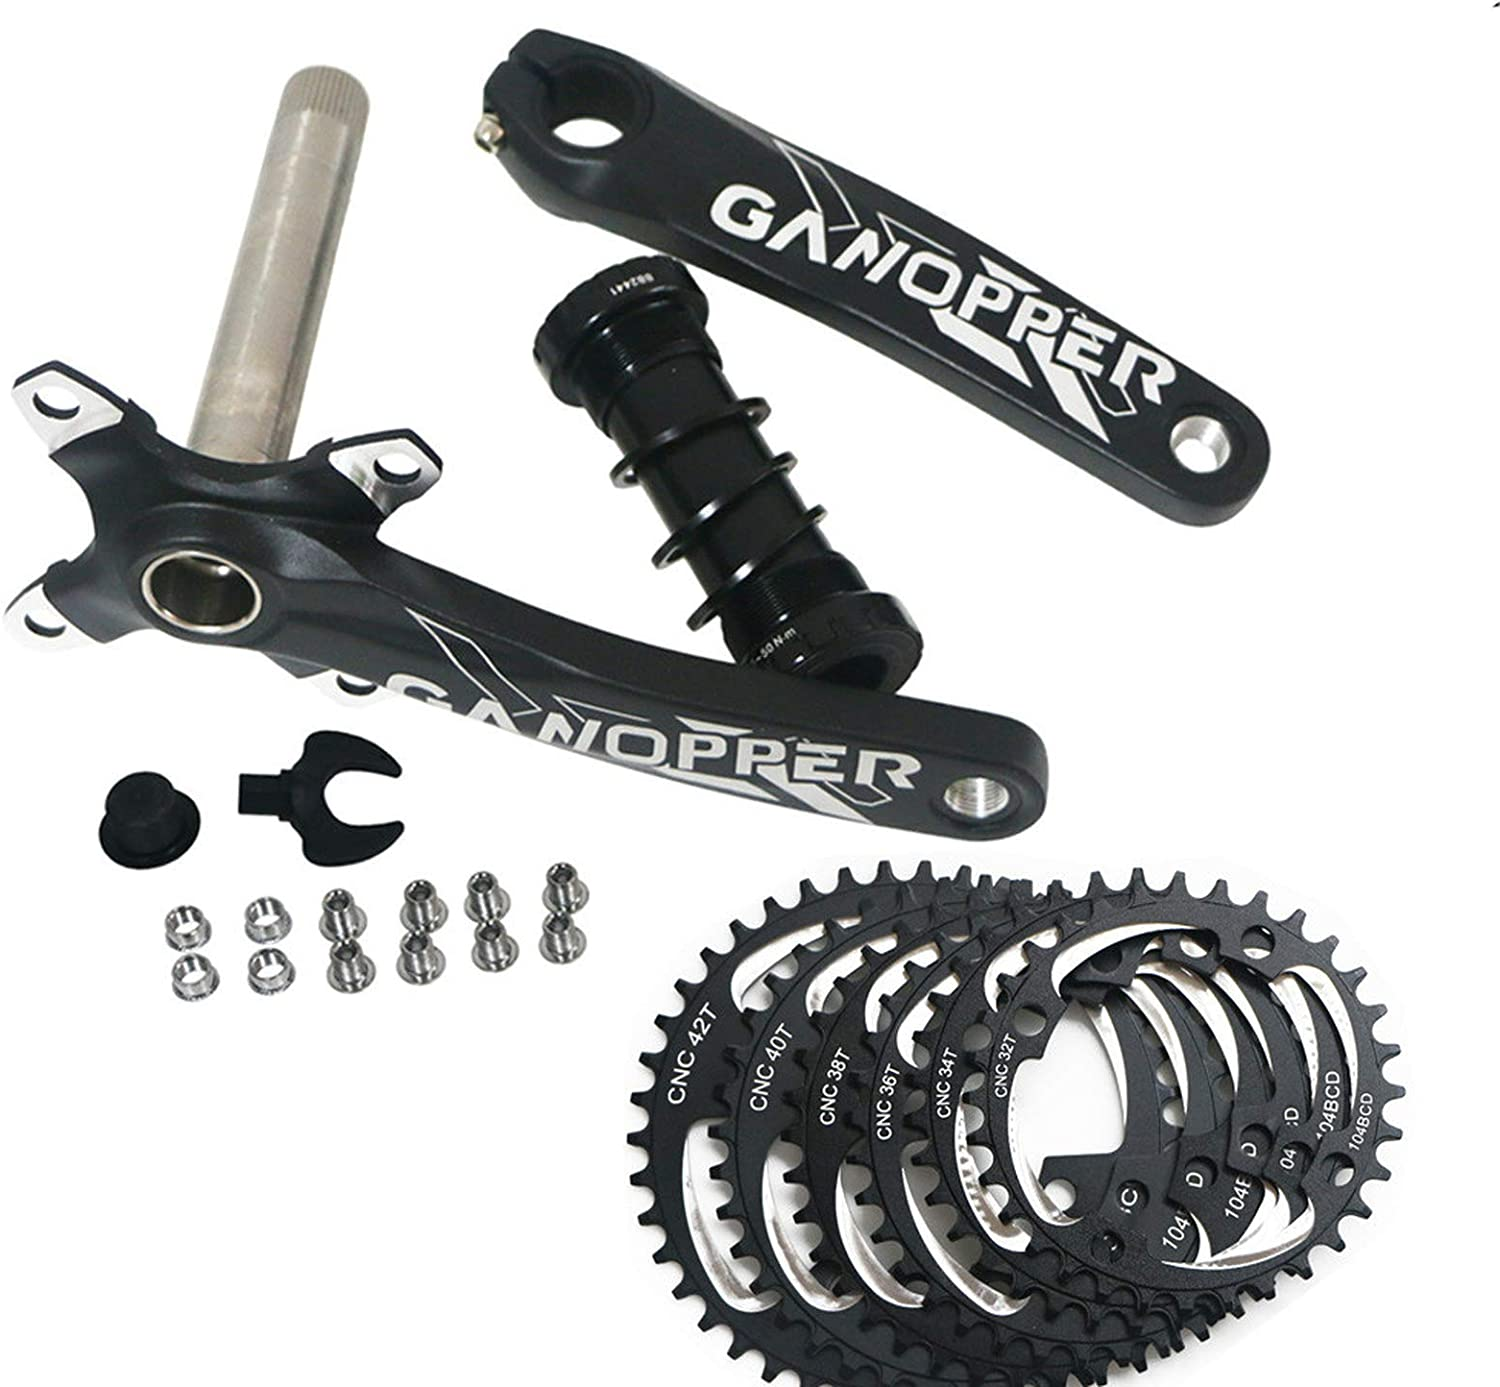 Bike Crankset Fat Bike Crankset Crankset Chainwheel 32T 104mm BCD Single Speed Chainset